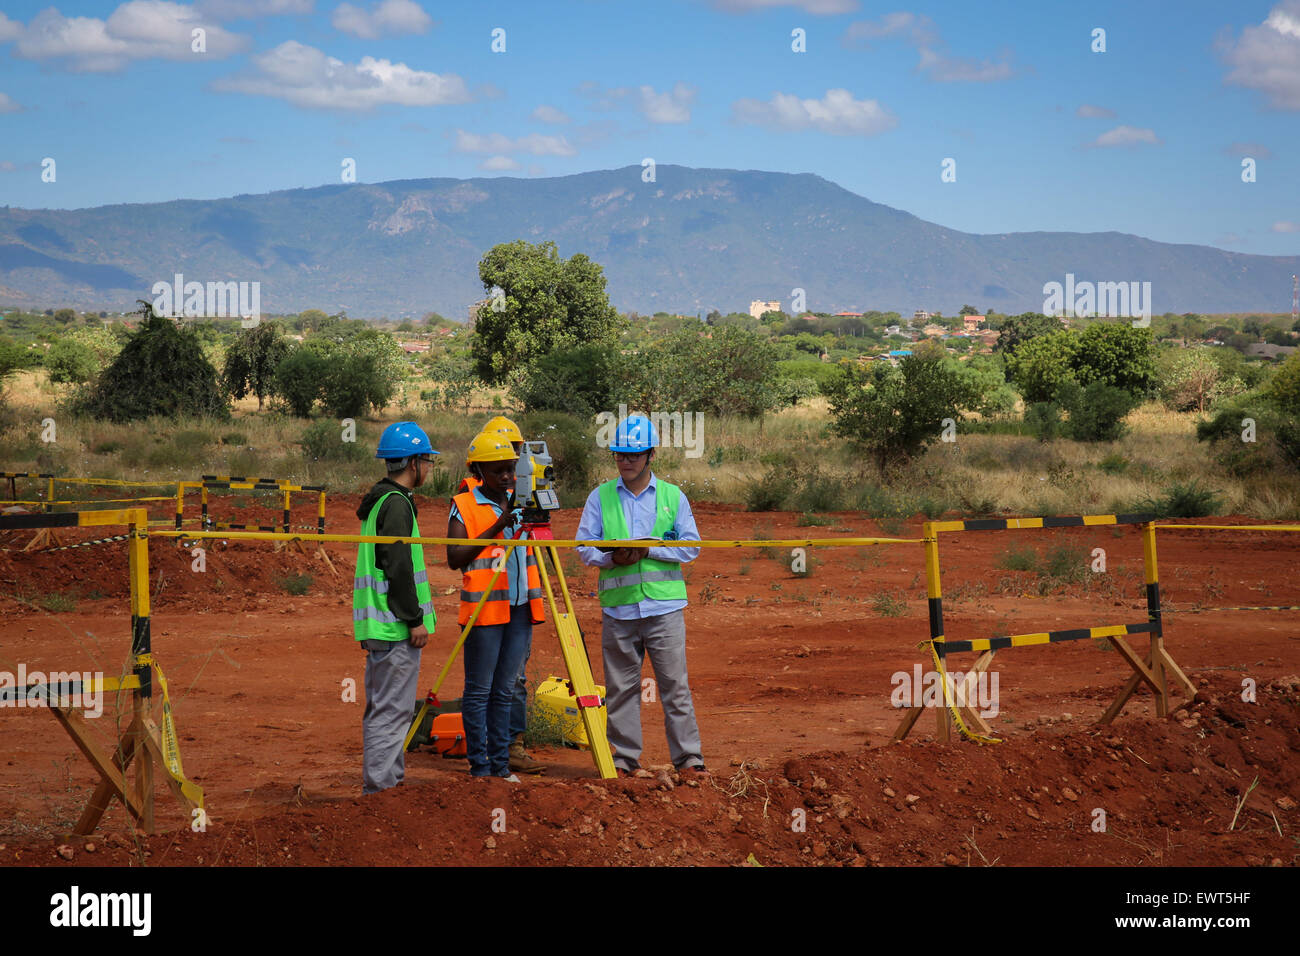 East African Railway Stock Photos & East African Railway